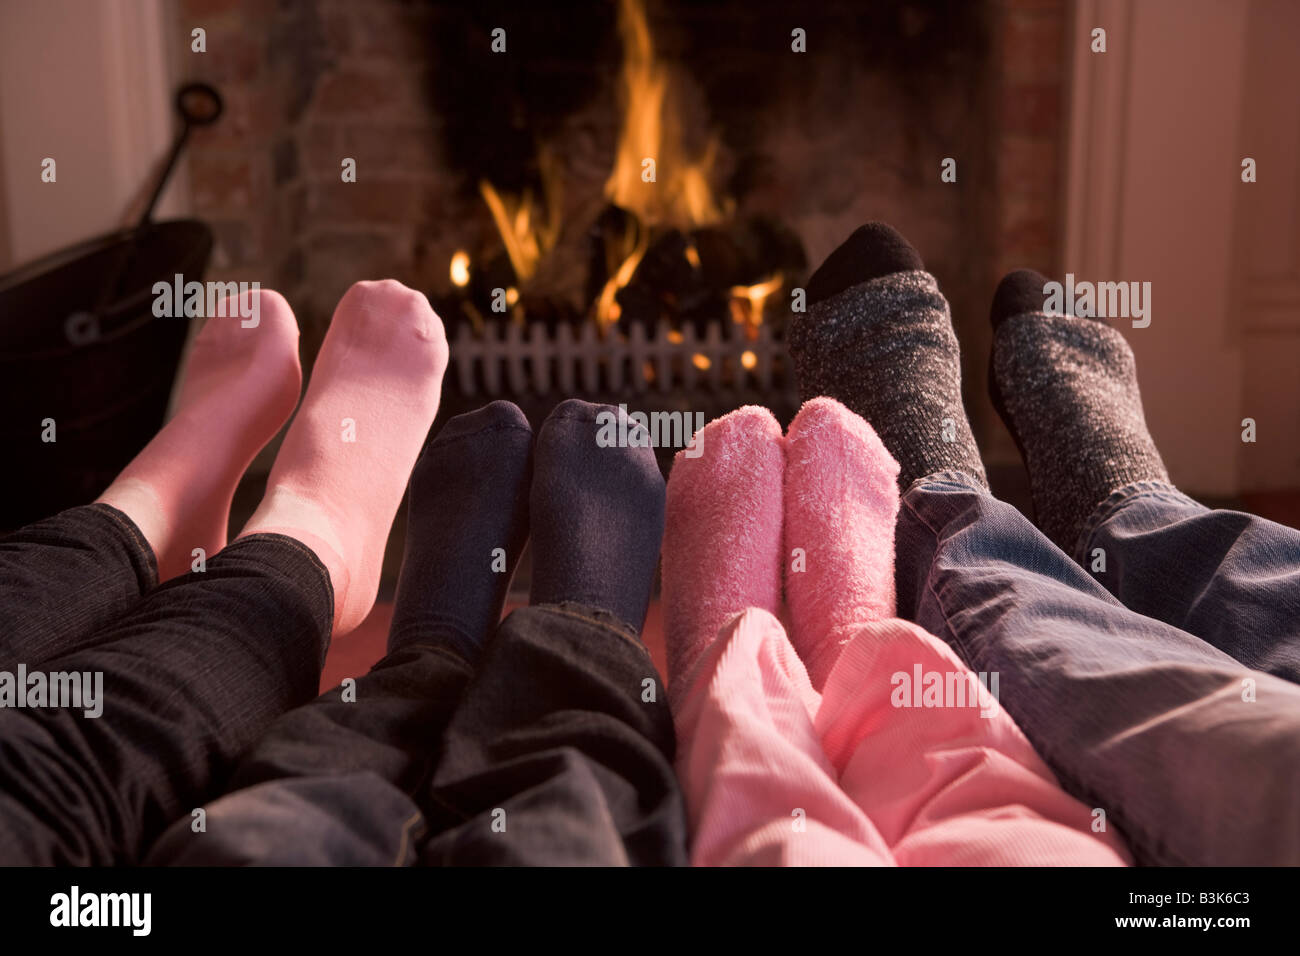 Family of Feet warming at a fireplace - Stock Image